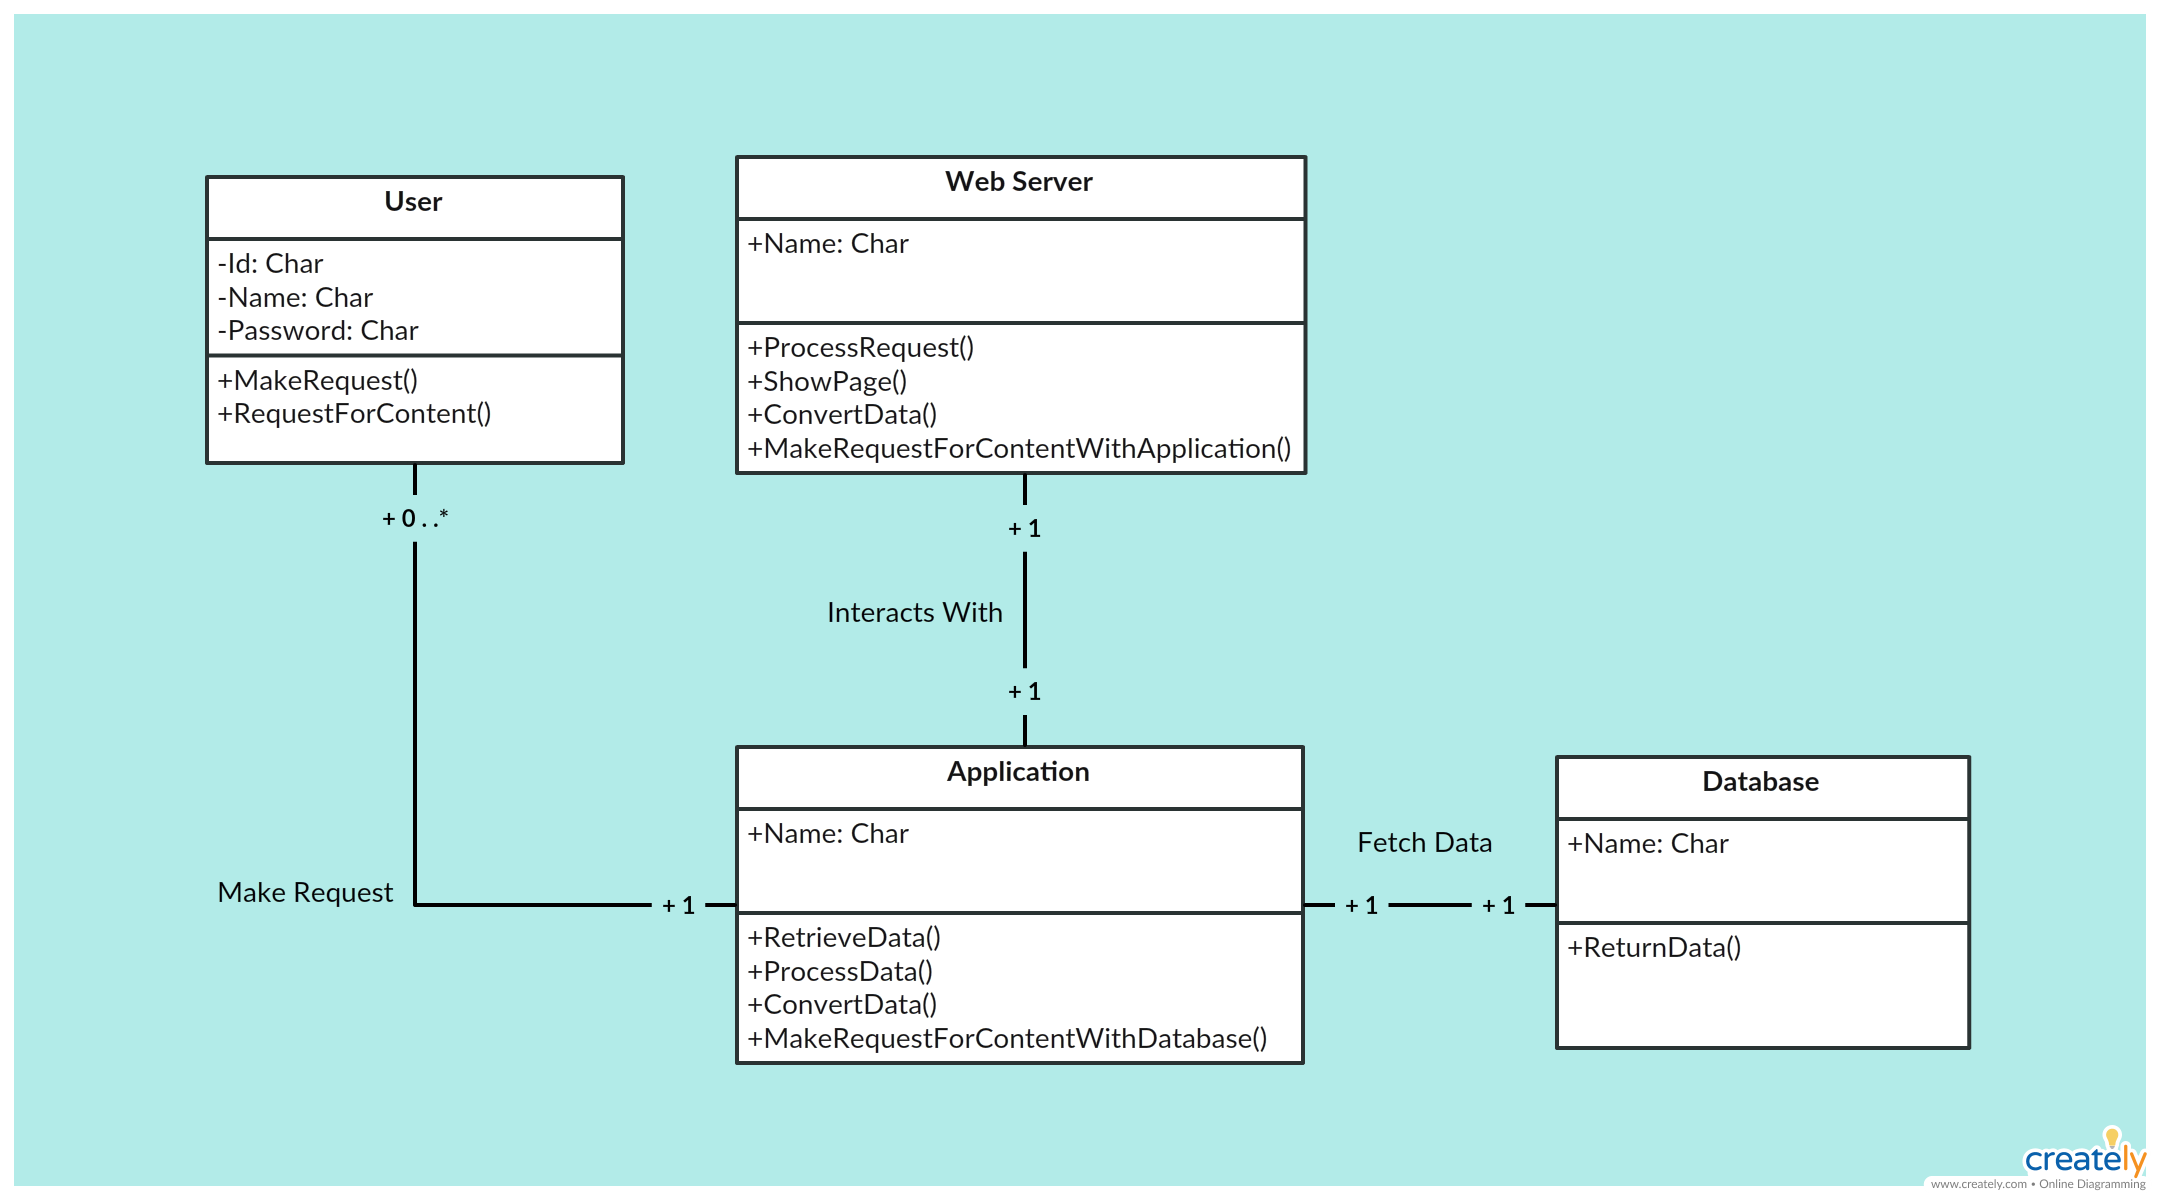 hight resolution of a uml class diagram showing content management system class diagram you can edit this uml class diagram using creately diagramming tool and include in